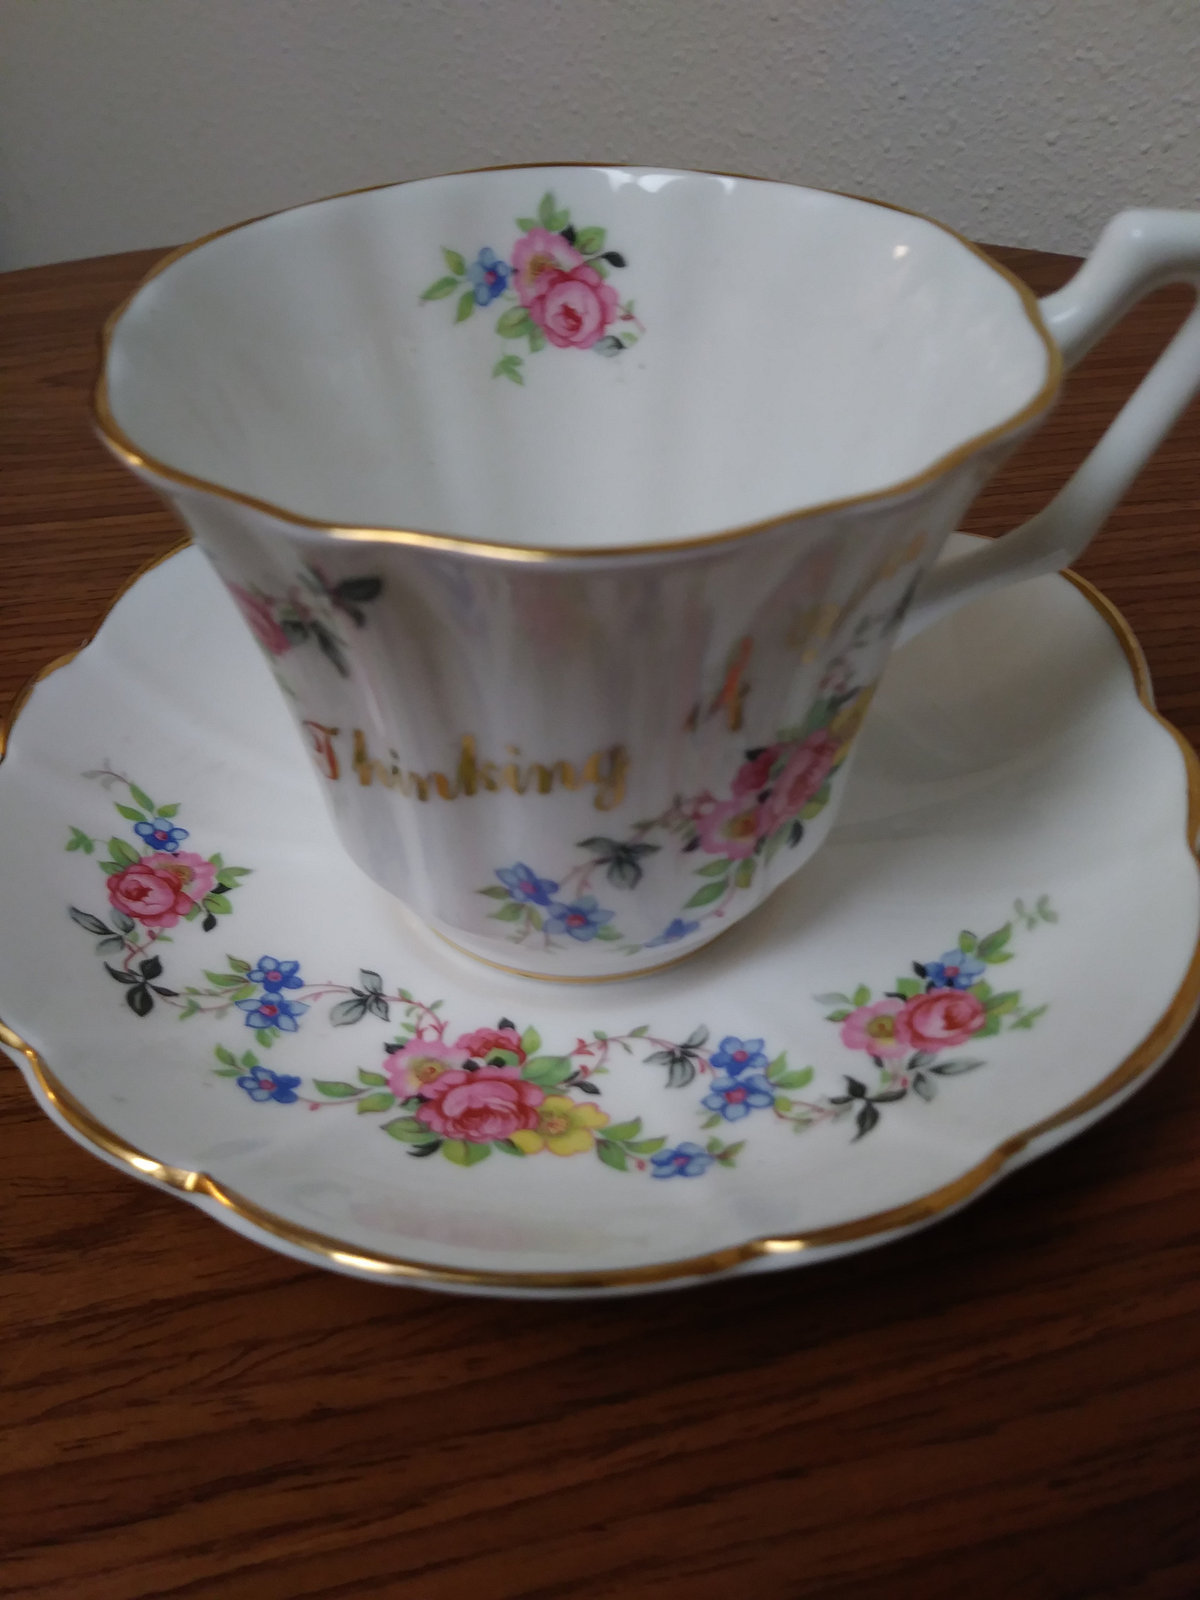 Grosvenor Bone China Teacup And Saucer Set Jackson & Gosling made in England